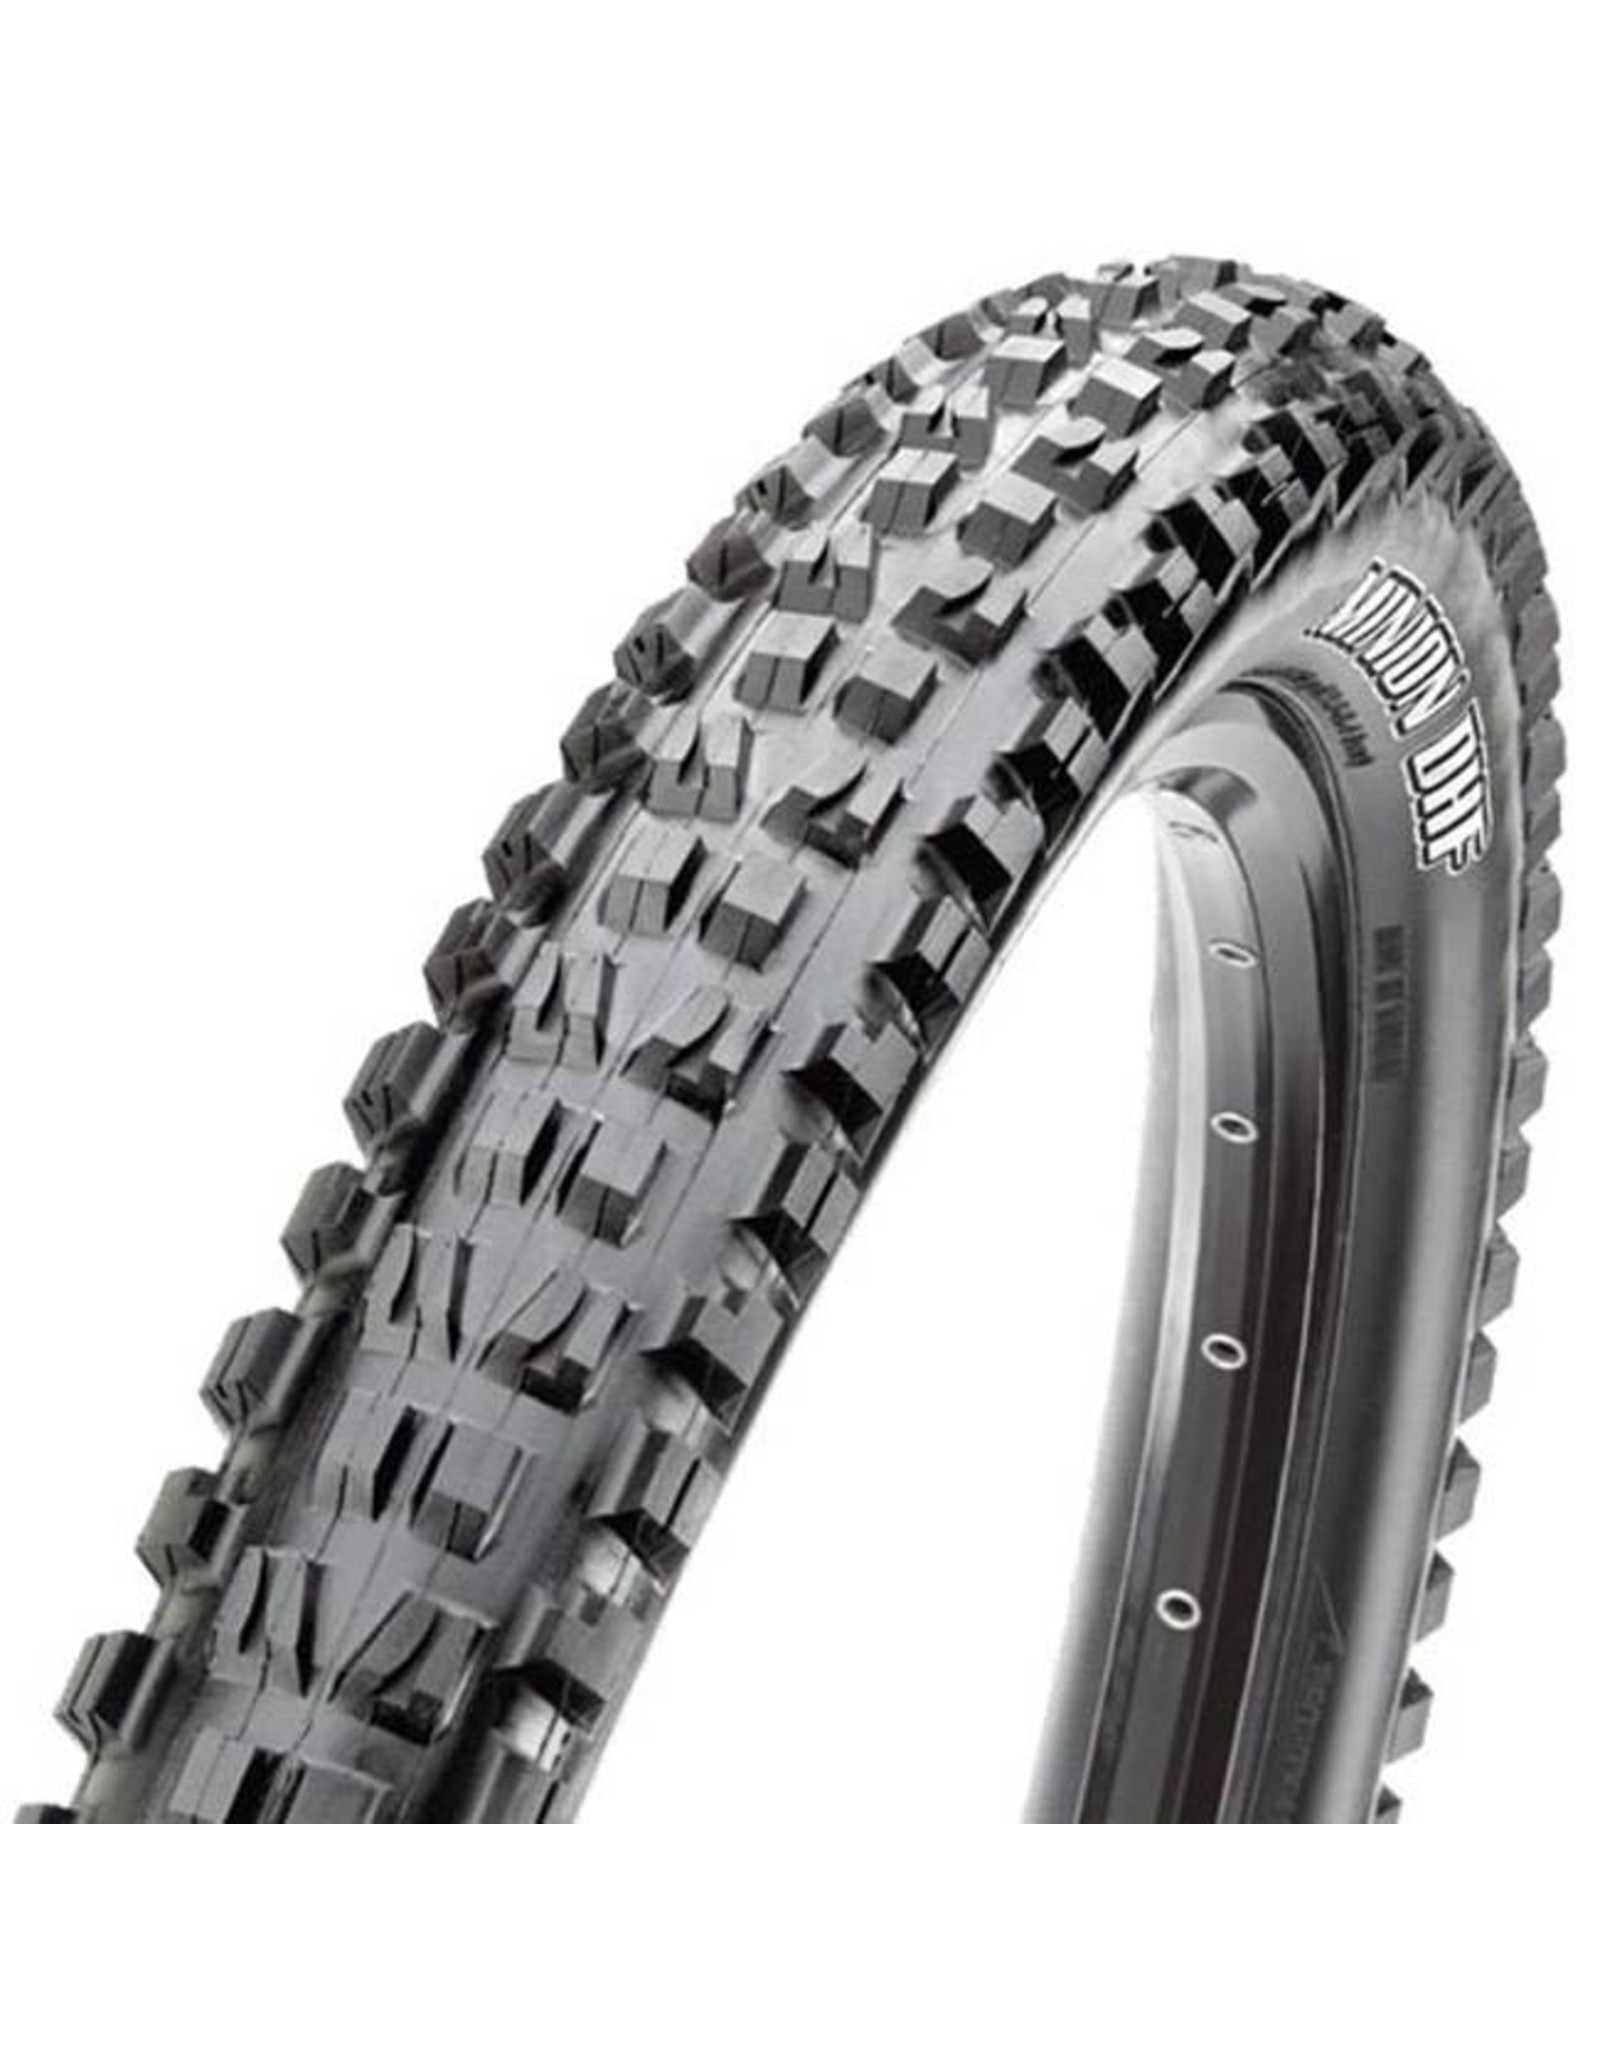 """Maxxis Maxxis Minion DHF Tire: 29 x 2.50"""", Folding, 60tpi, Dual Compound, 2- Ply, Tubeless Ready, Wide Trail, Black"""